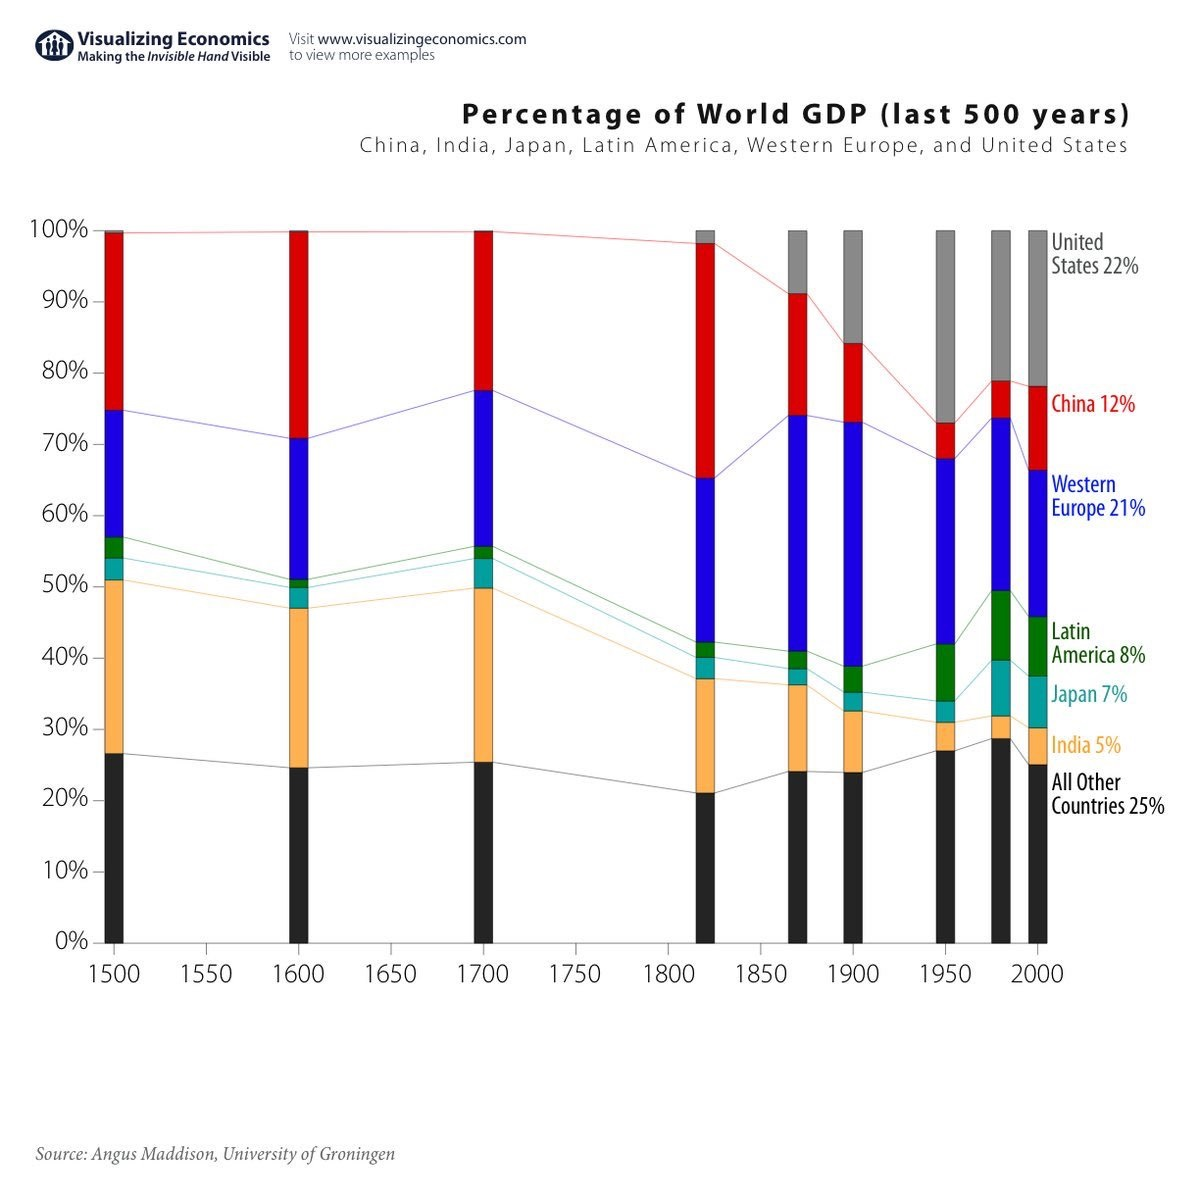 Share of world GDP during the last 500 years